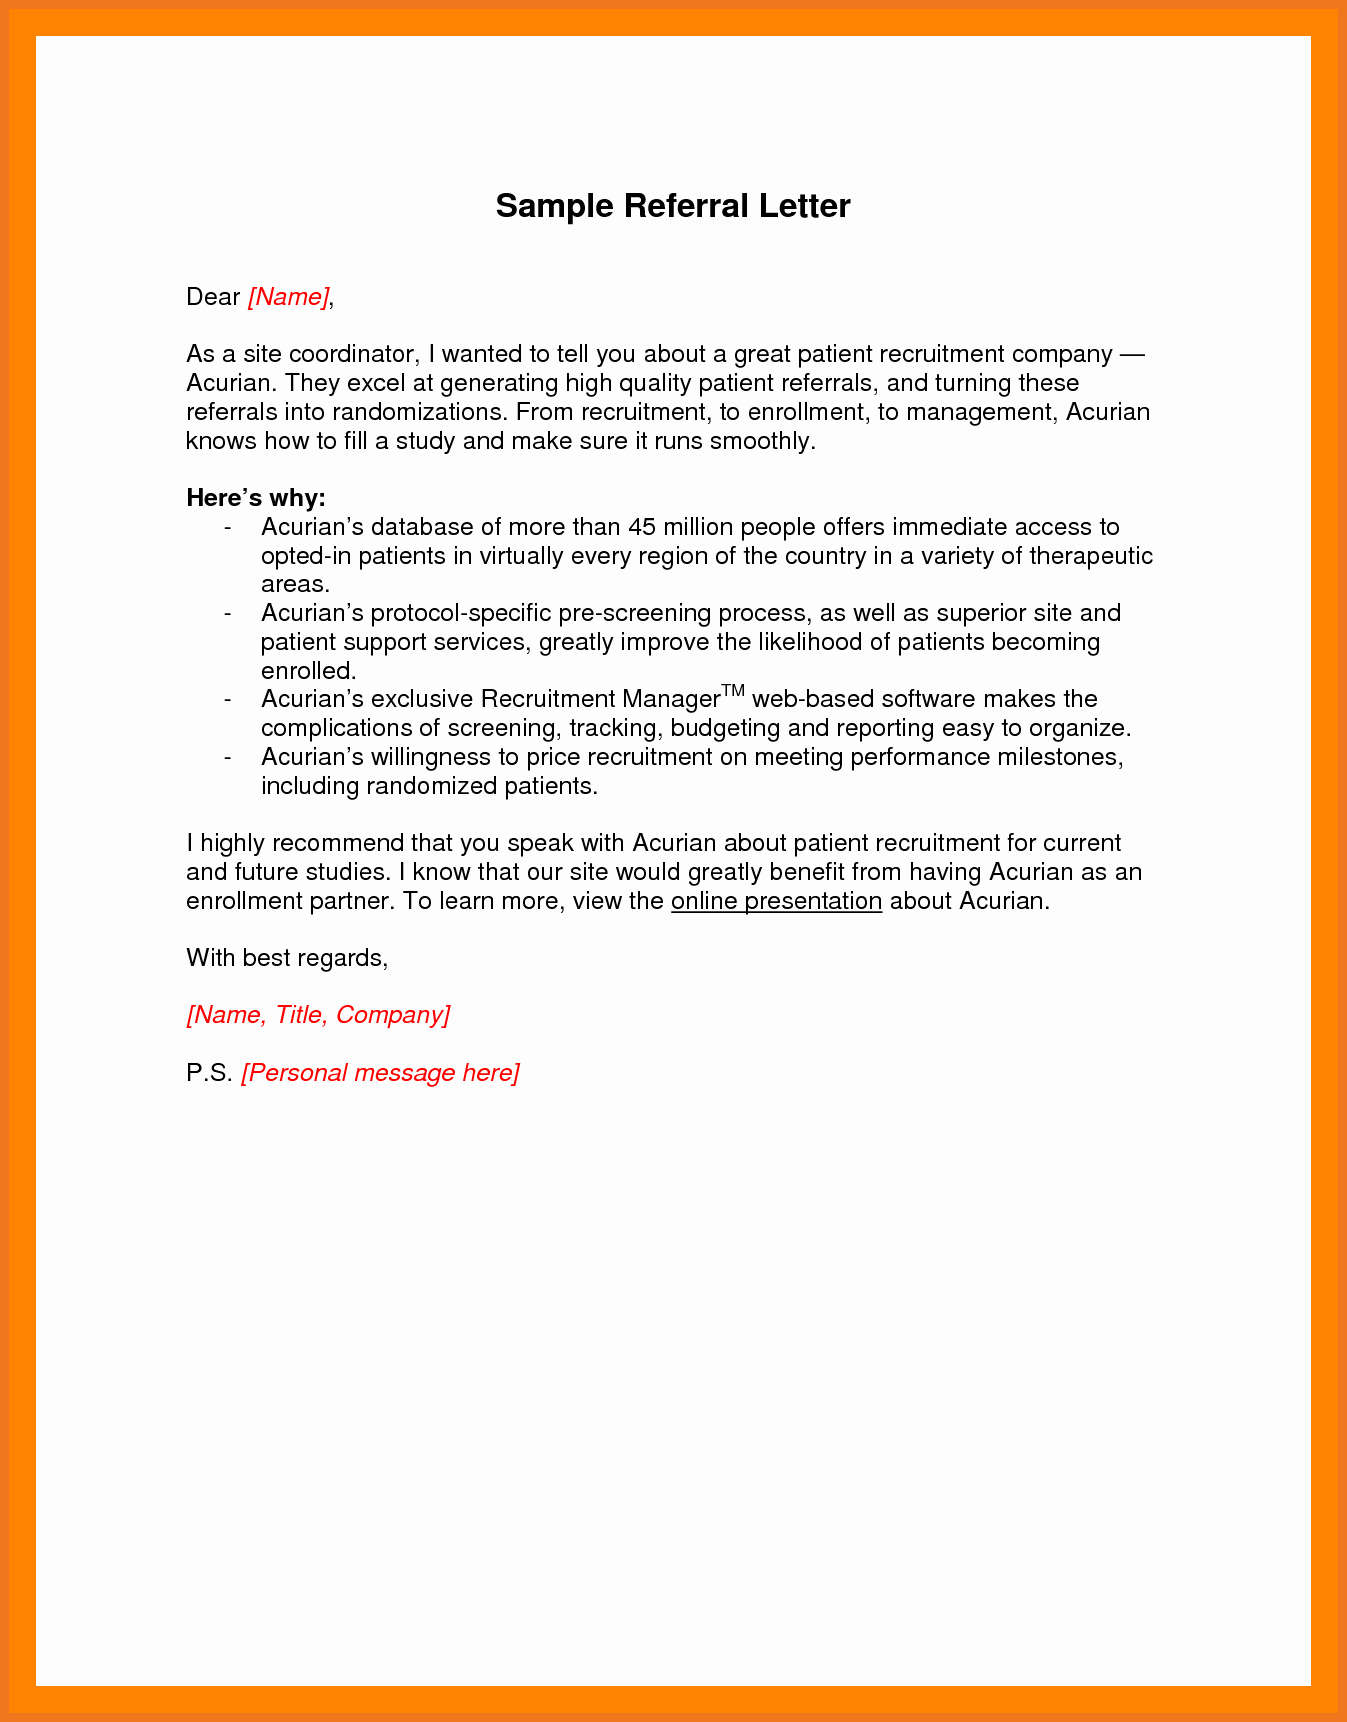 Letter asking for Referrals From Medical Professionals Luxury 7 8 How to Write A Referral Letter